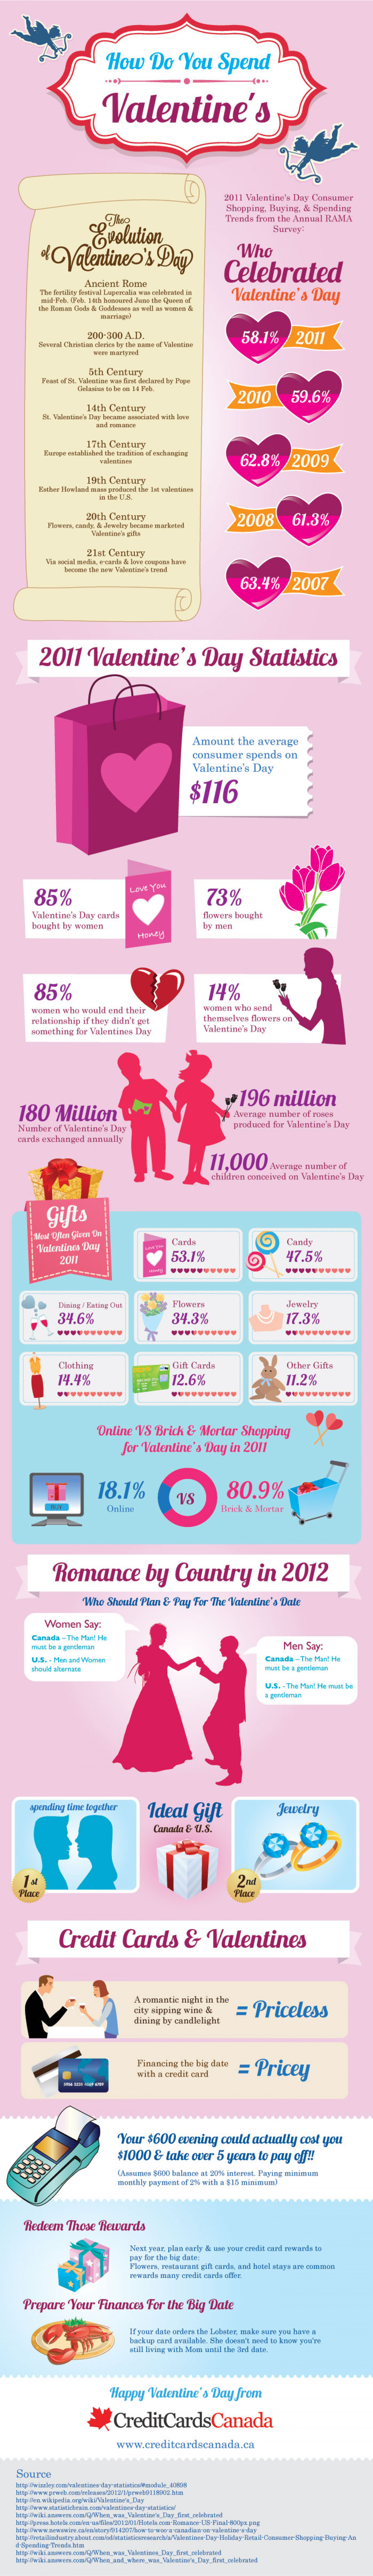 ValentinesDay by the Numbers Infographic